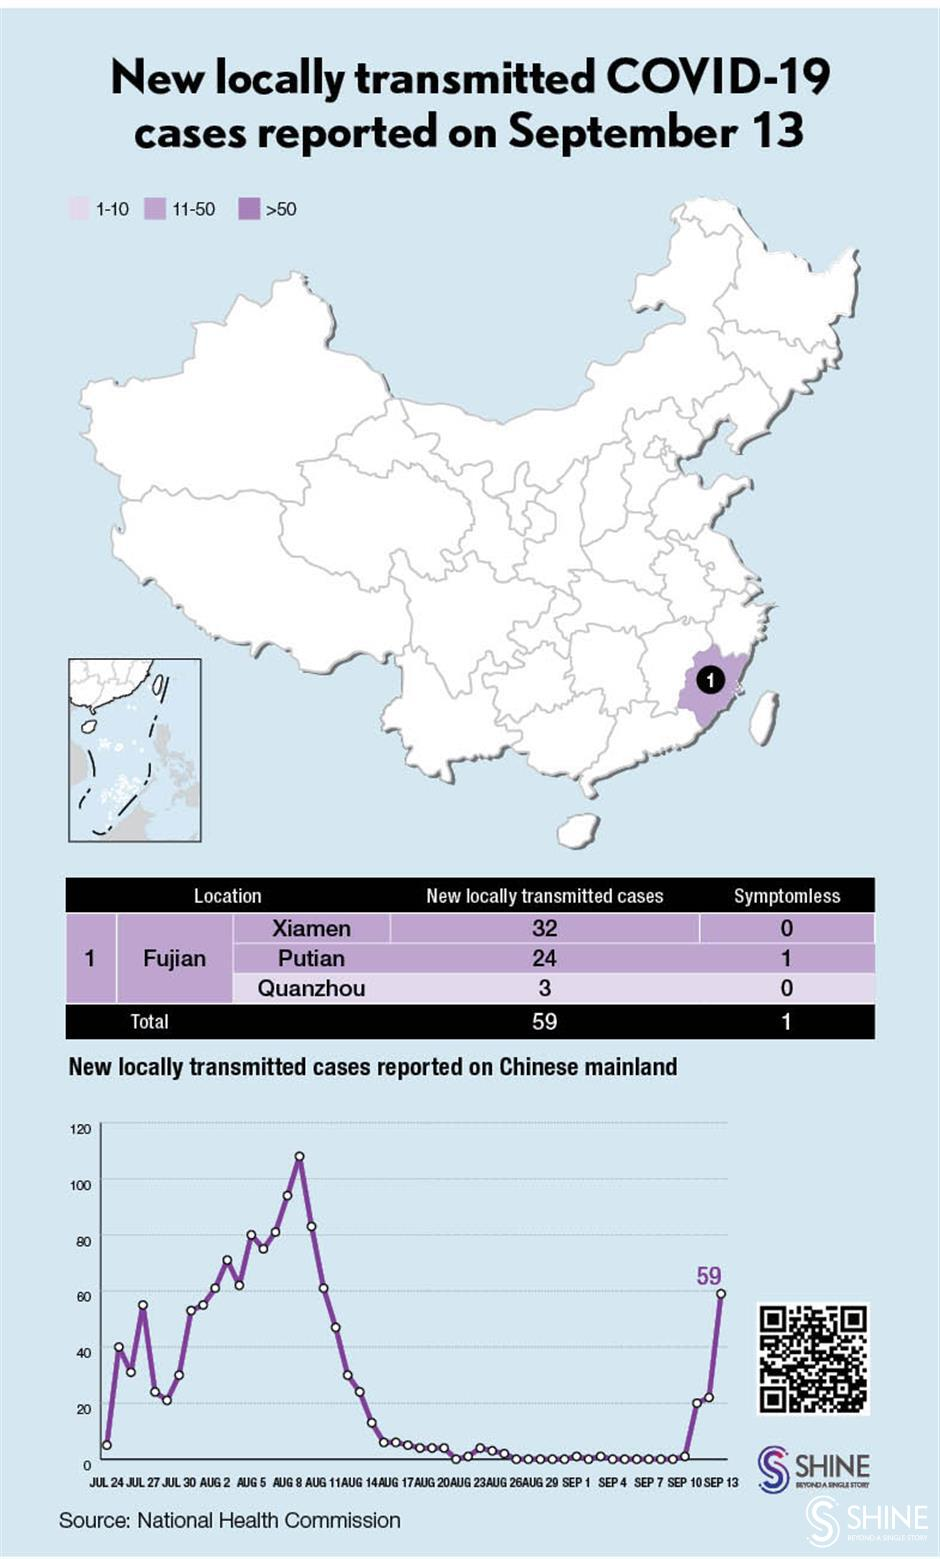 Chinese mainland reports 59 new locally transmitted COVID-19 cases